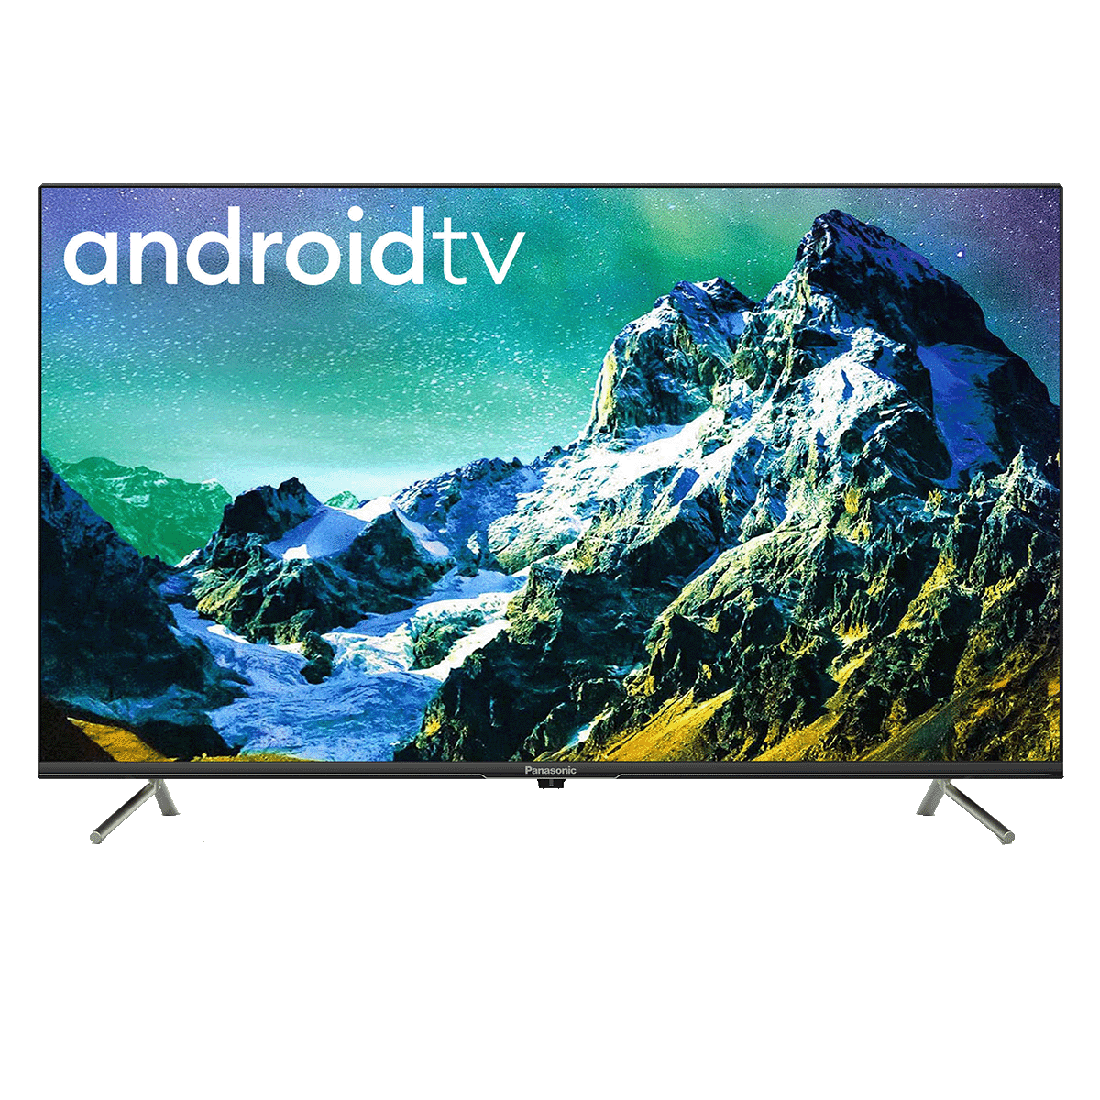 Panasonic Viera 108cm (43 Inch) 4K Ultra HD Android Smart TV (TH-43HX700DX , Black)